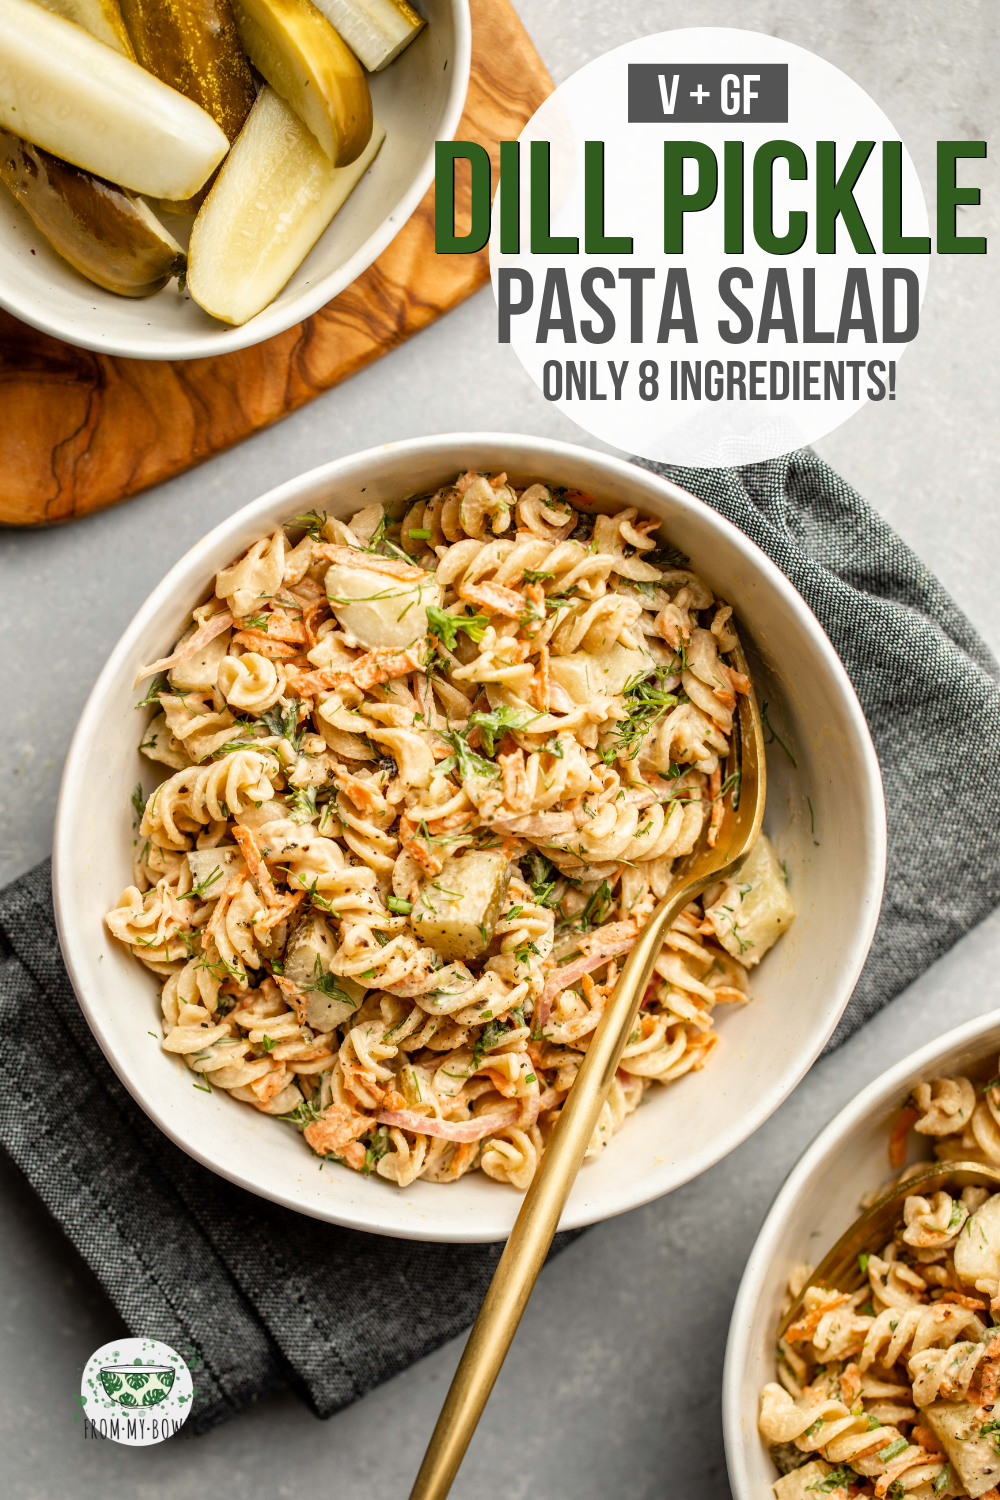 Dill Pickle Pasta Salad | Vegan + GF - From My Bowl